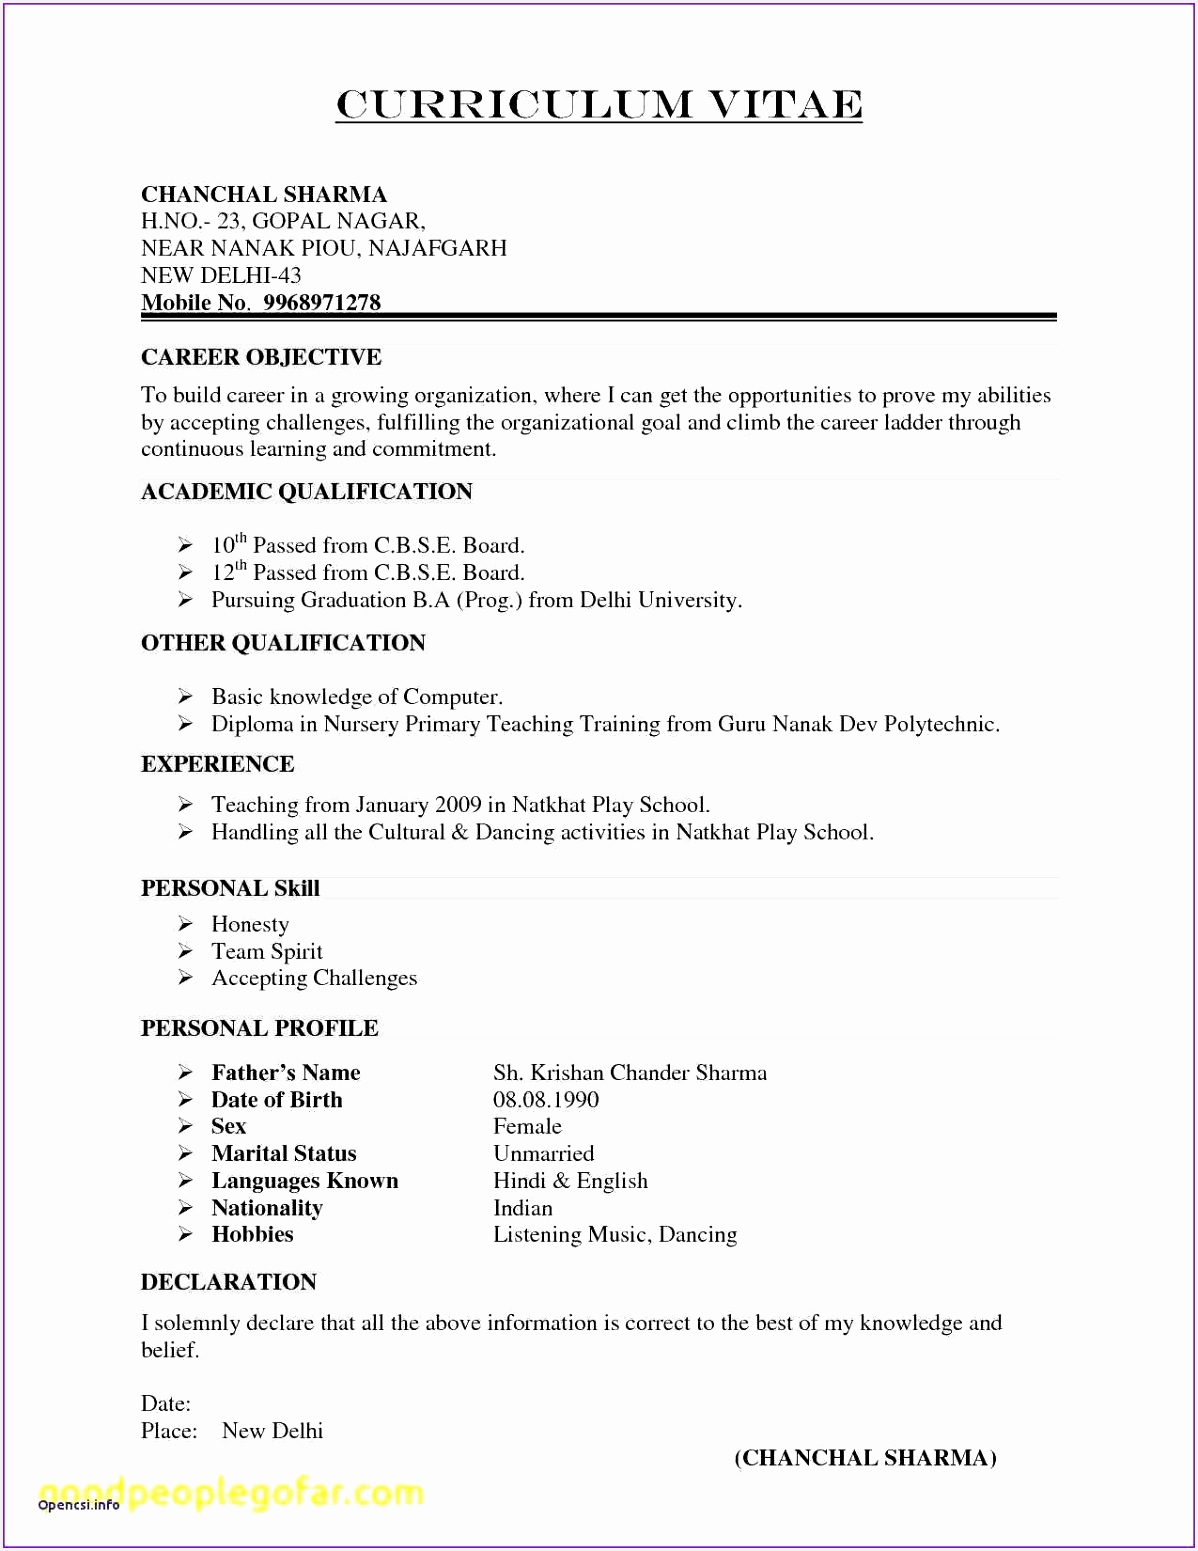 Microsoft Trainer Sample Resume Dcwig Elegant 53 Elegant Microsoft Word Free Resume Templates Awesome Resume Of Microsoft Trainer Sample Resume Fsadg Beautiful Retail Resume Template Microsoft Word Fresh Retail Resume Sample